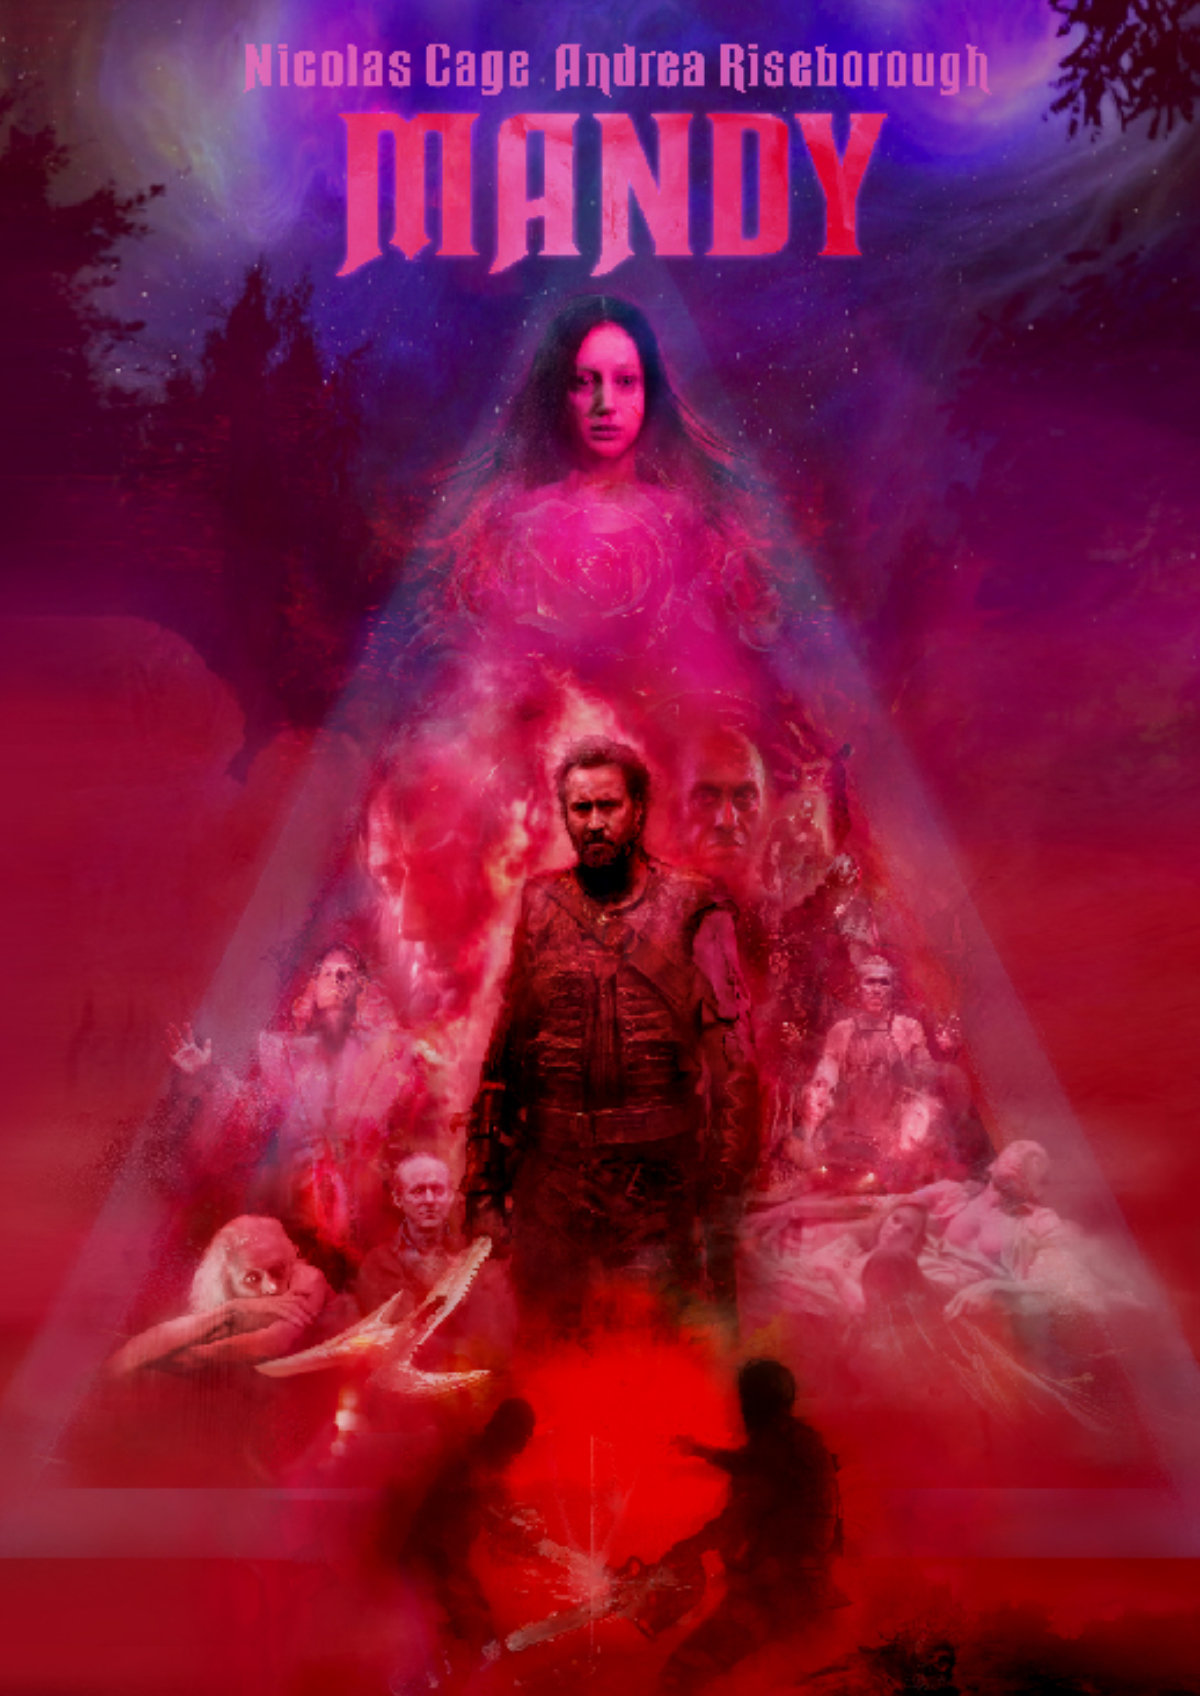 'Mandy' movie poster